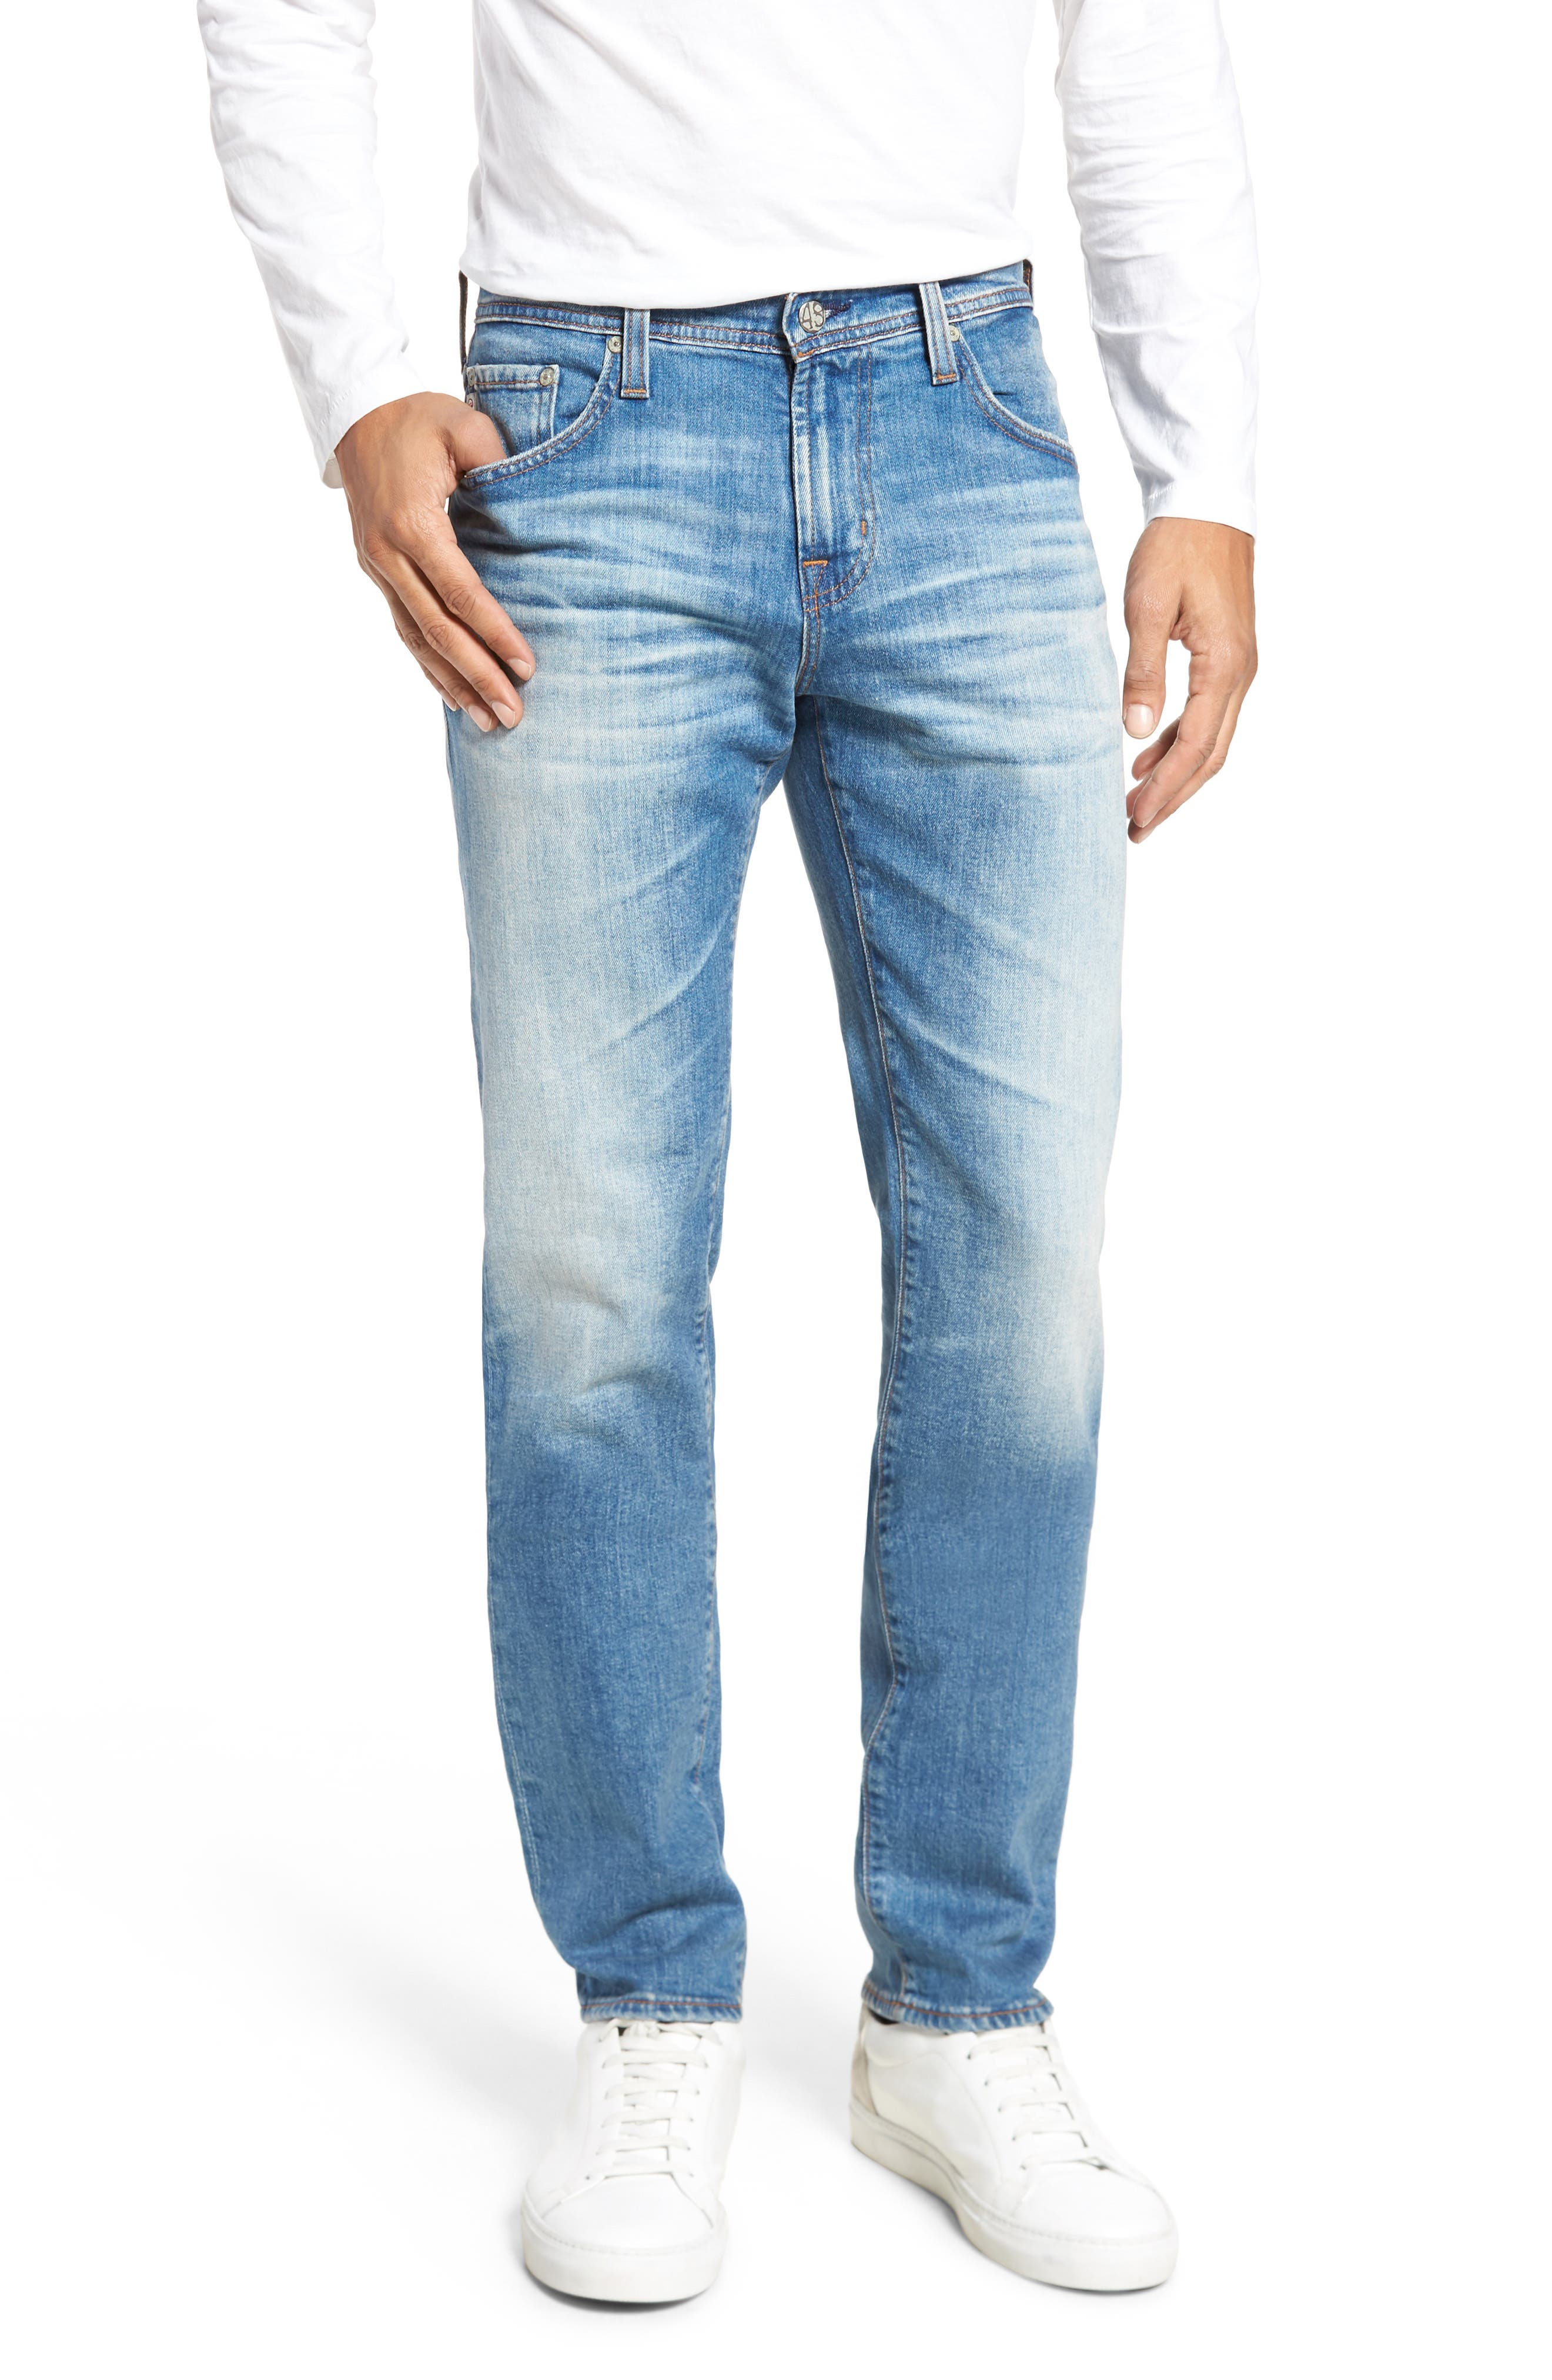 Tellis Modern Slim Fit Jeans,                             Main thumbnail 1, color,                             19 Years Rocket